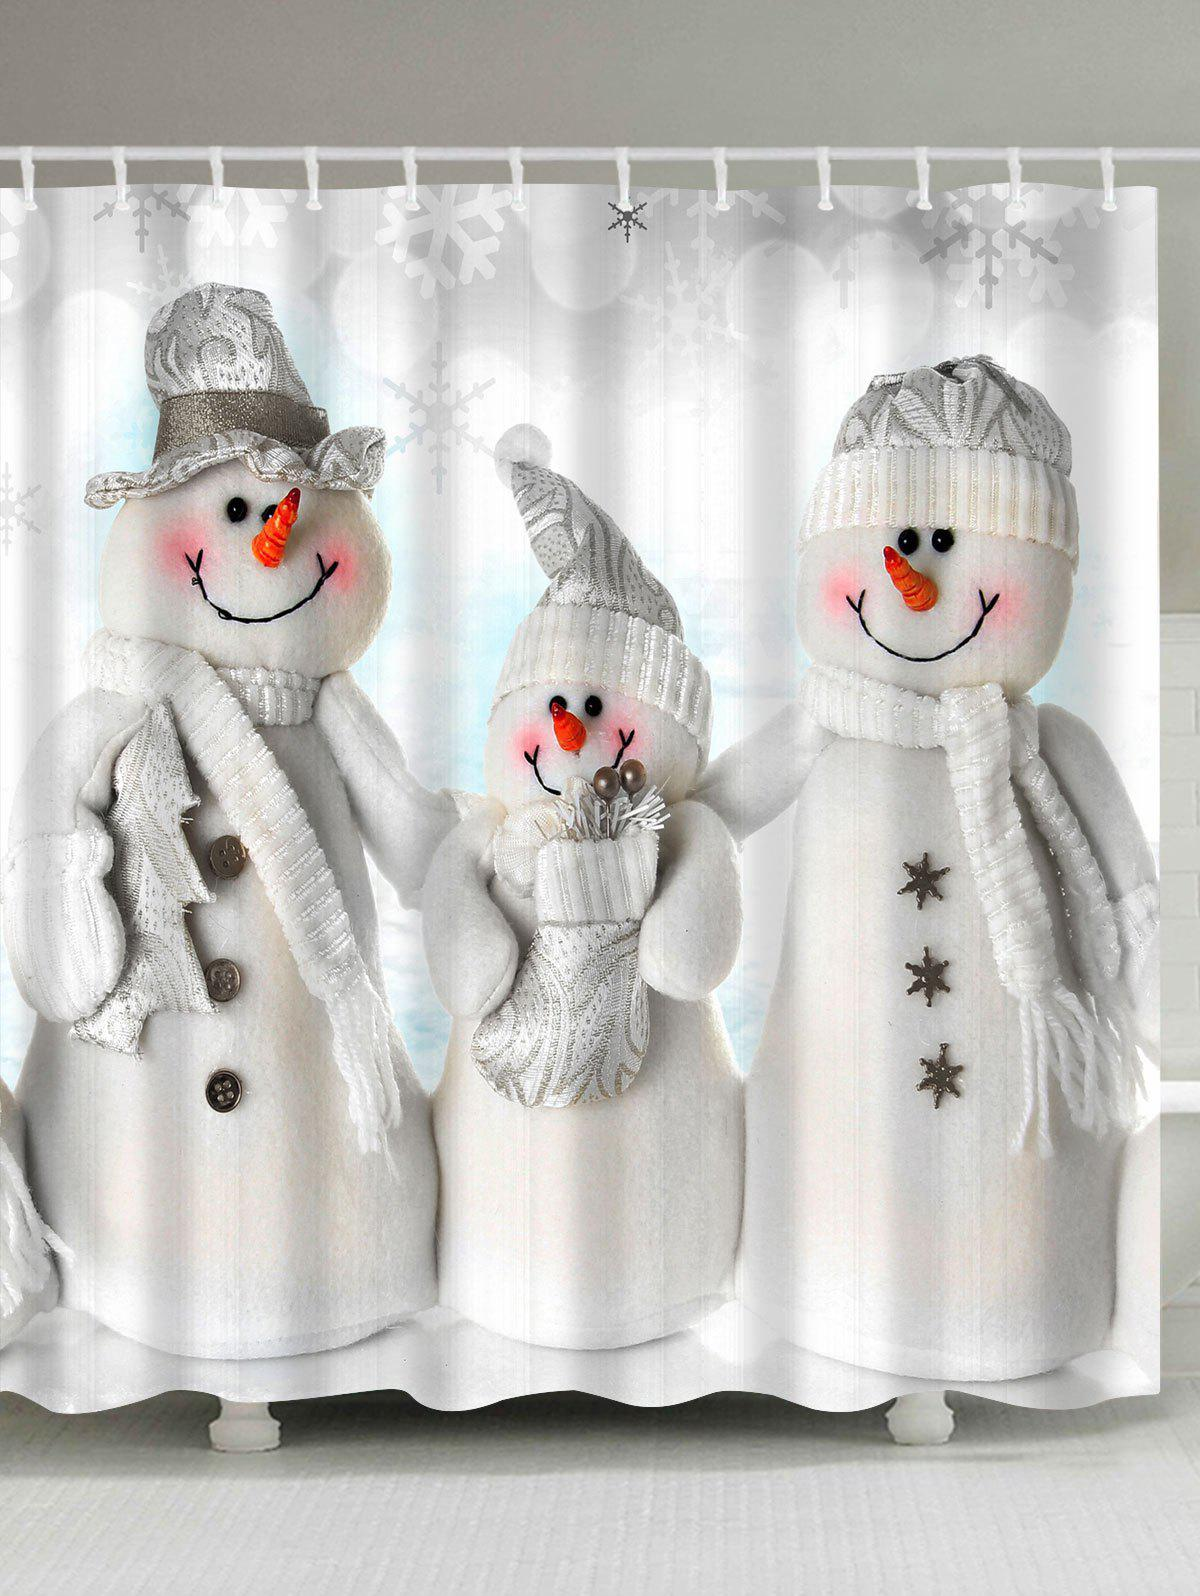 Waterproof Polyester Christmas Snowman Bath CurtainHOME<br><br>Size: W71 INCH * L71 INCH; Color: GREY WHITE; Products Type: Shower Curtains; Materials: Polyester; Pattern: Snowman; Style: Festival; Number of Hook Holes: W59 inch*L71 inch: 10; W71 inch*L71 inch: 12; W71 inch*L79 inch: 12; Package Contents: 1 x Shower Curtain 1 x Hooks (Set);